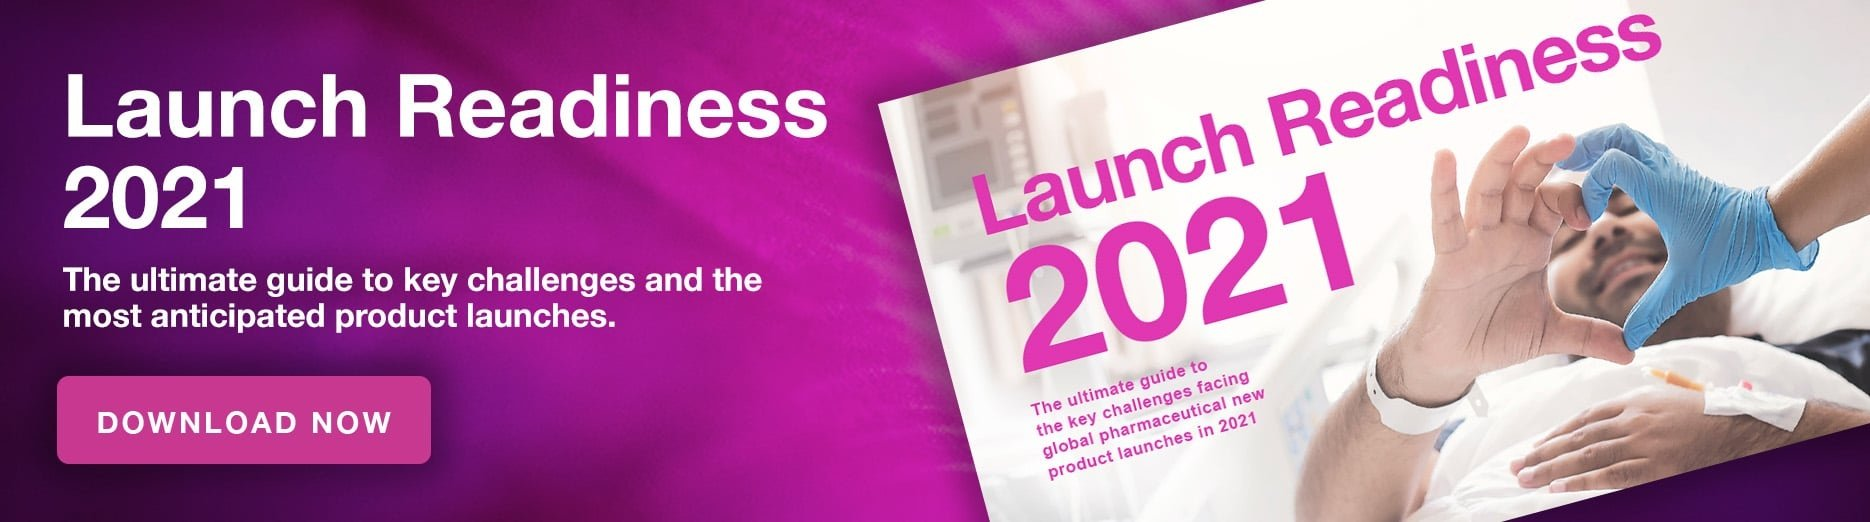 Launch Readiness in 2021 - TRiBECA Guide